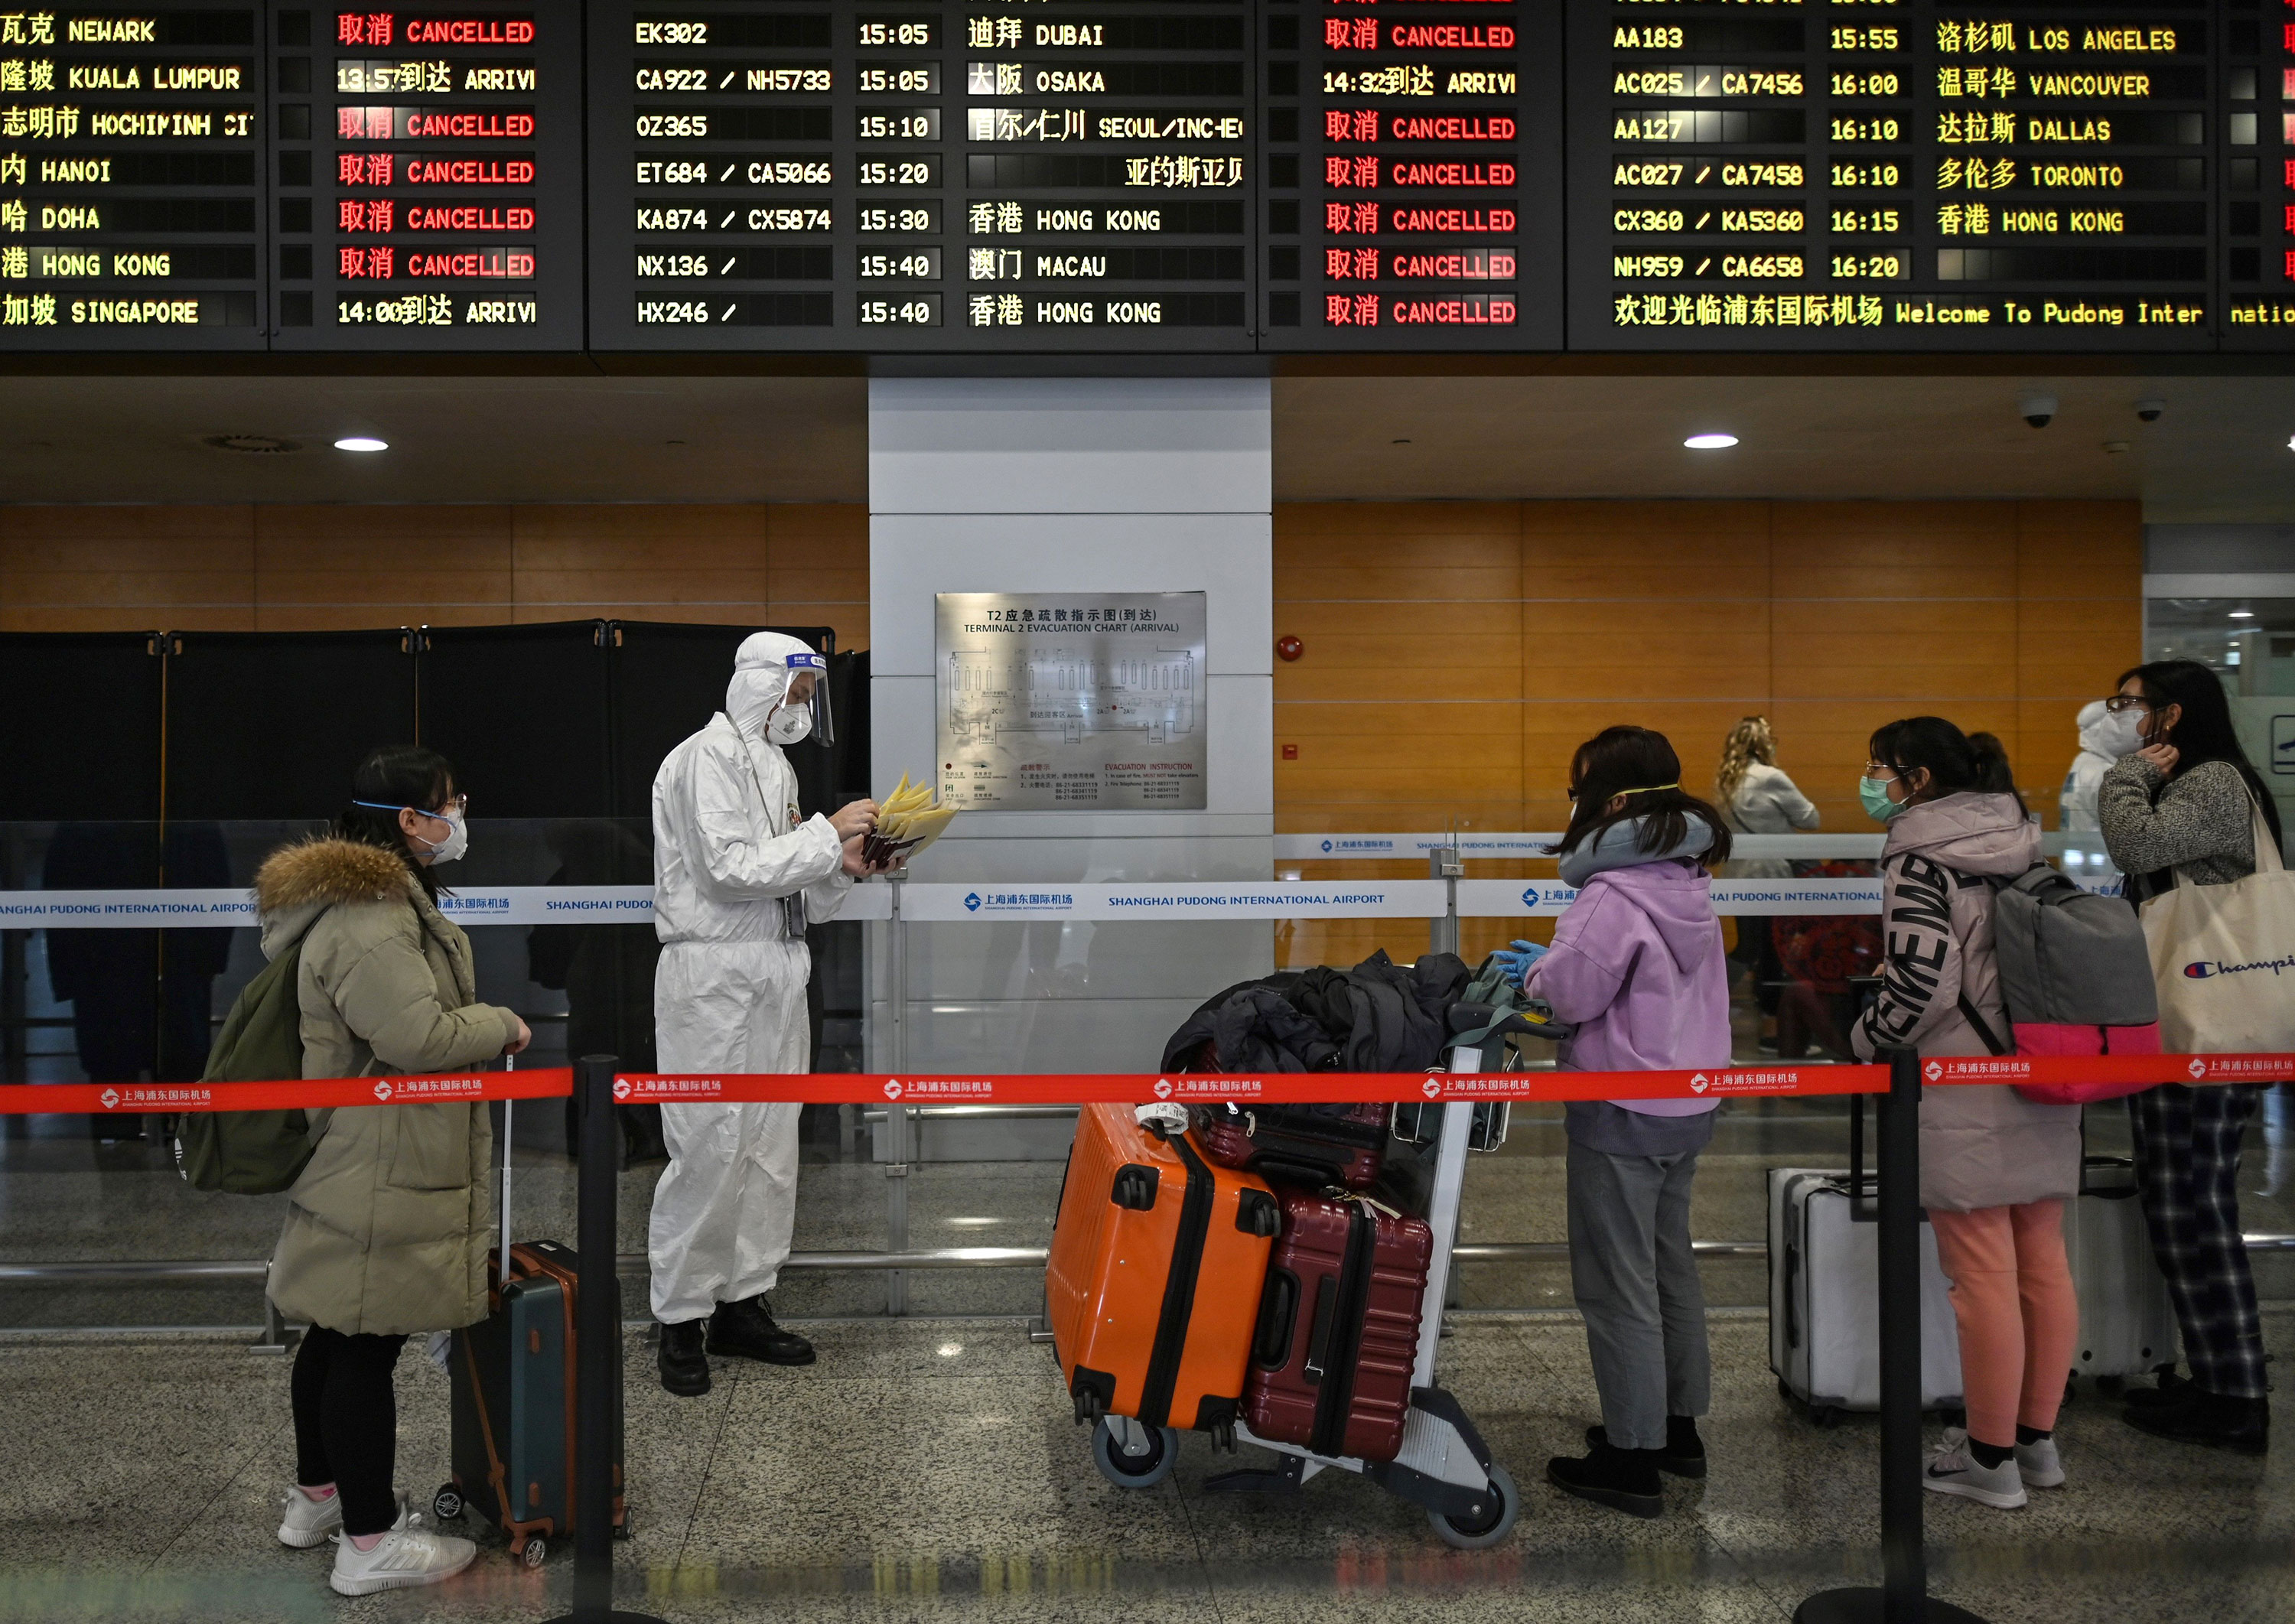 An airport security staff member assists passengers arriving to the Shanghai Pudong International Airport in Shanghai on March 19.